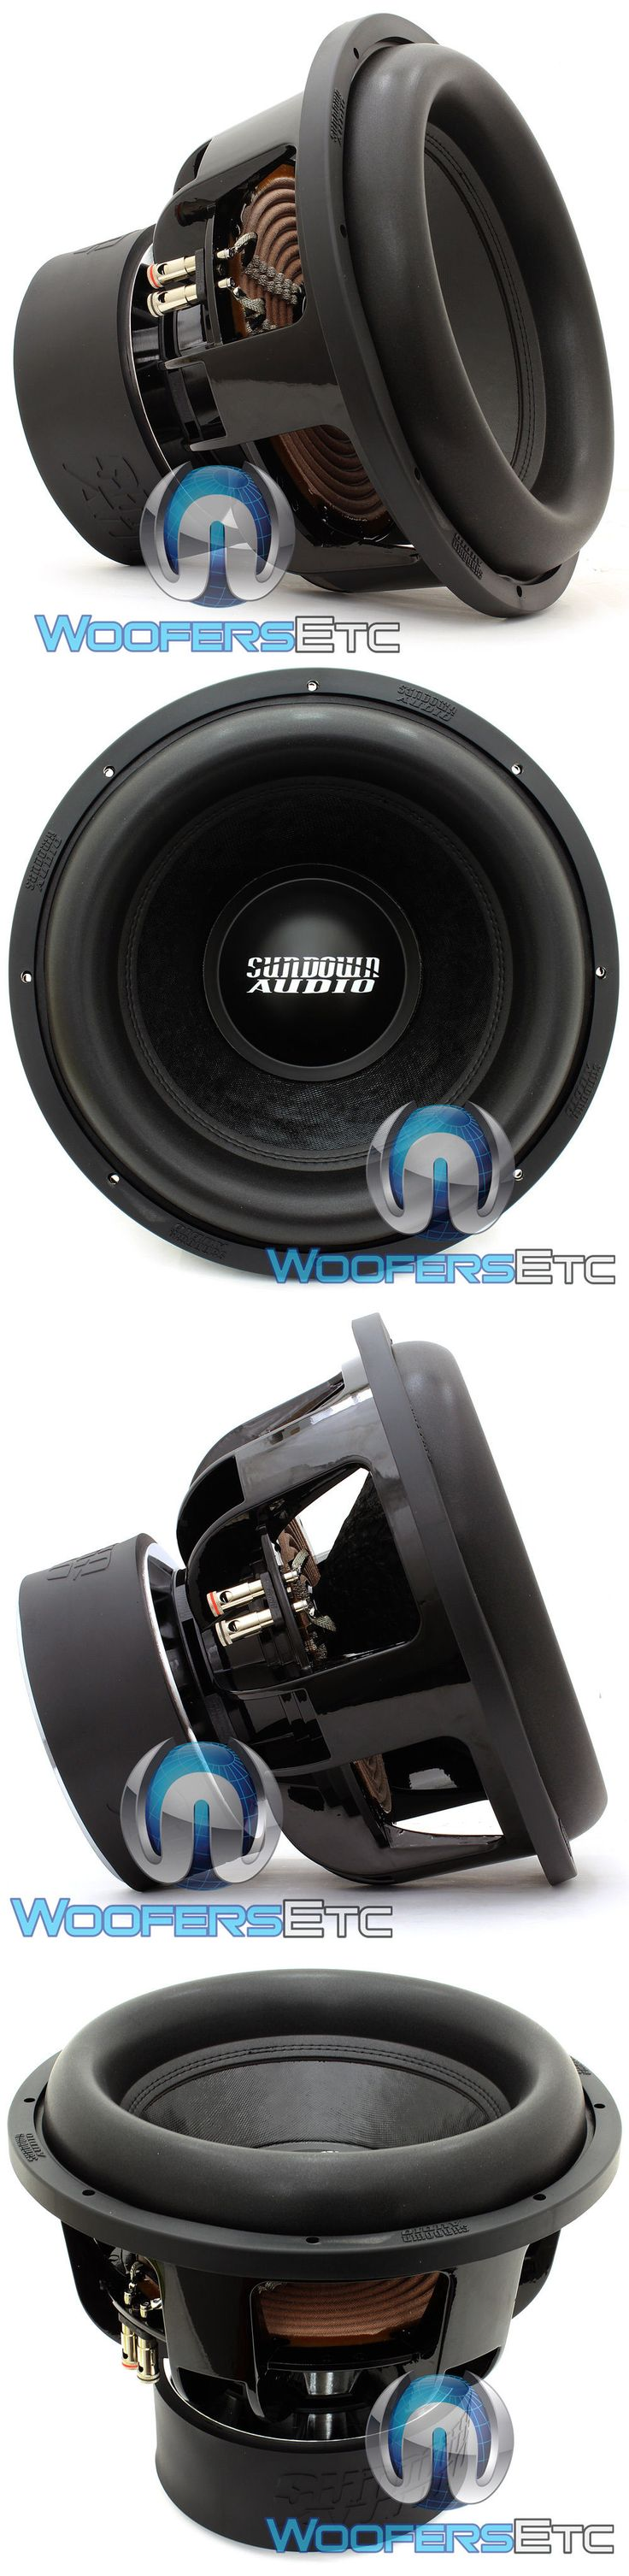 Car Subwoofers: Sundown Audio X-15 V.2 D2 Pro 15 Dual 2-Ohm 1500W Rms Bass Subwoofer Speaker -> BUY IT NOW ONLY: $549.99 on eBay!